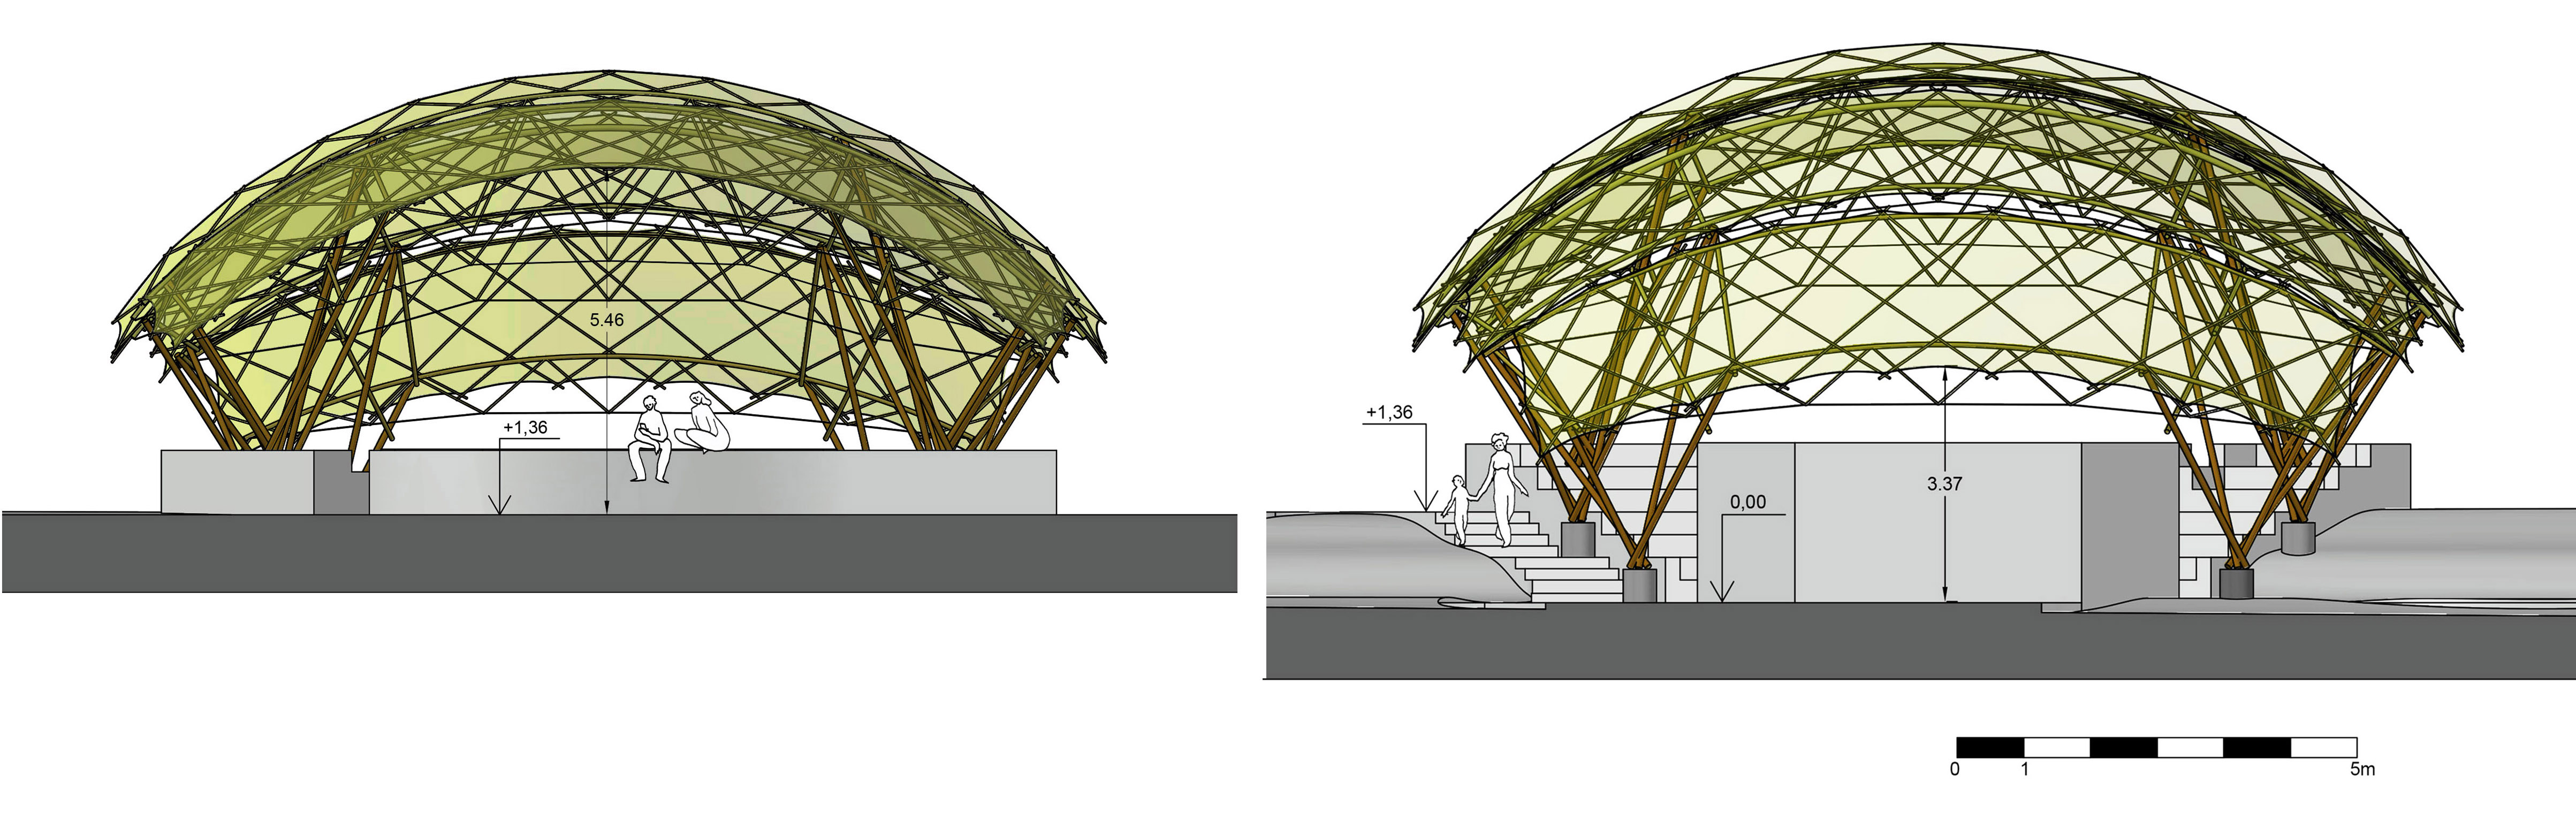 Bamboo-and-textile-space-structure-dome-5.jpg